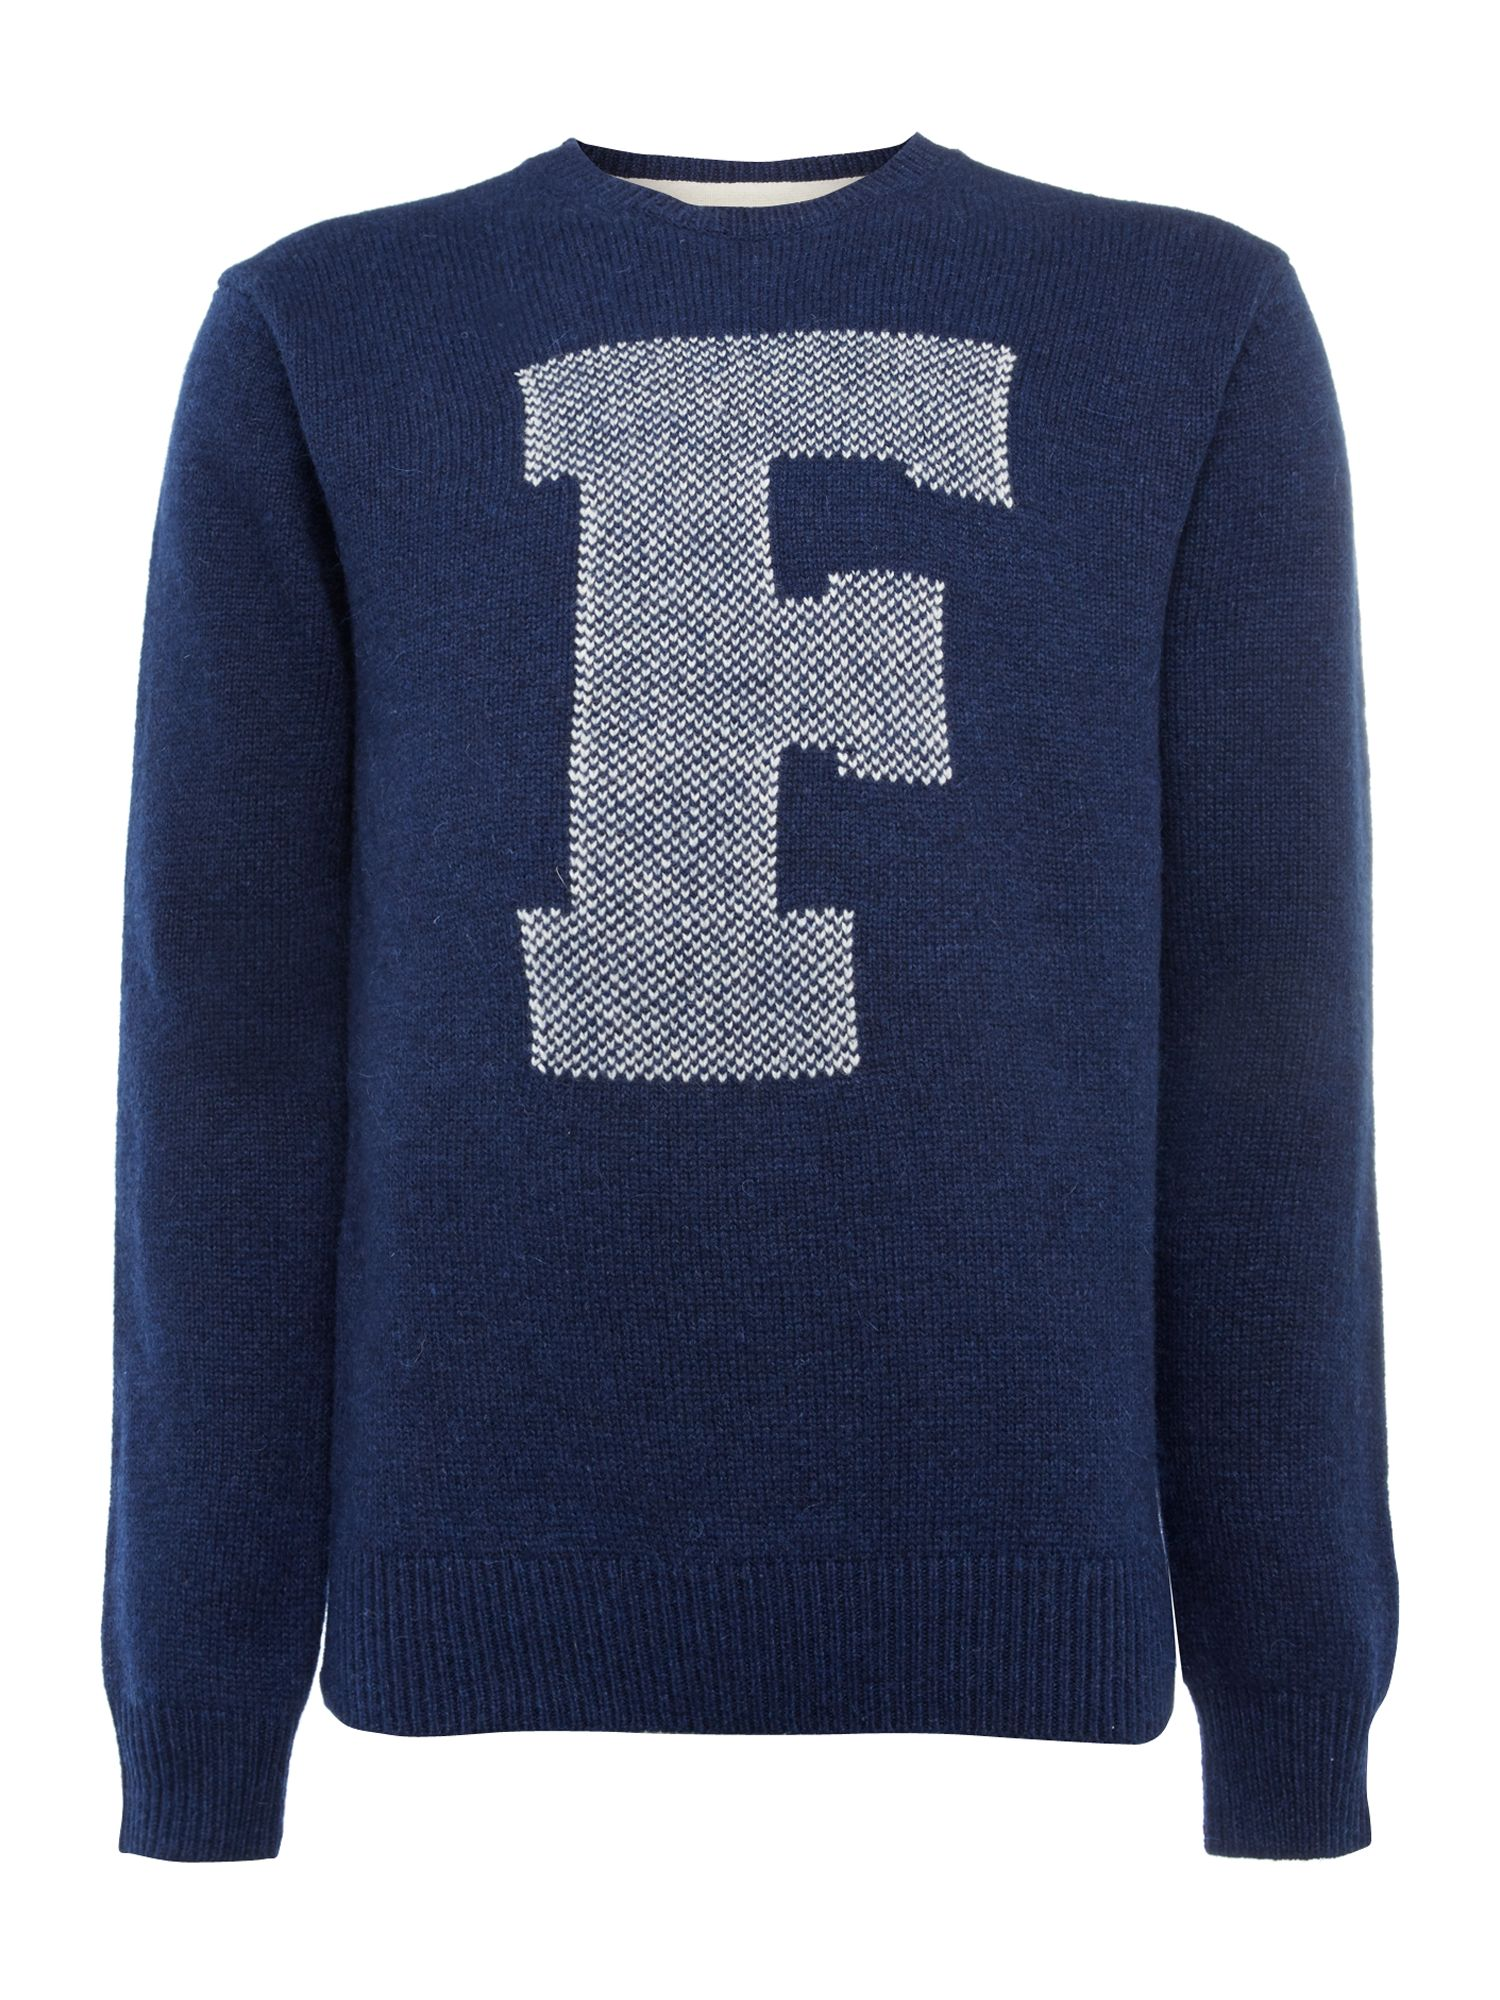 F it knit crew jumper